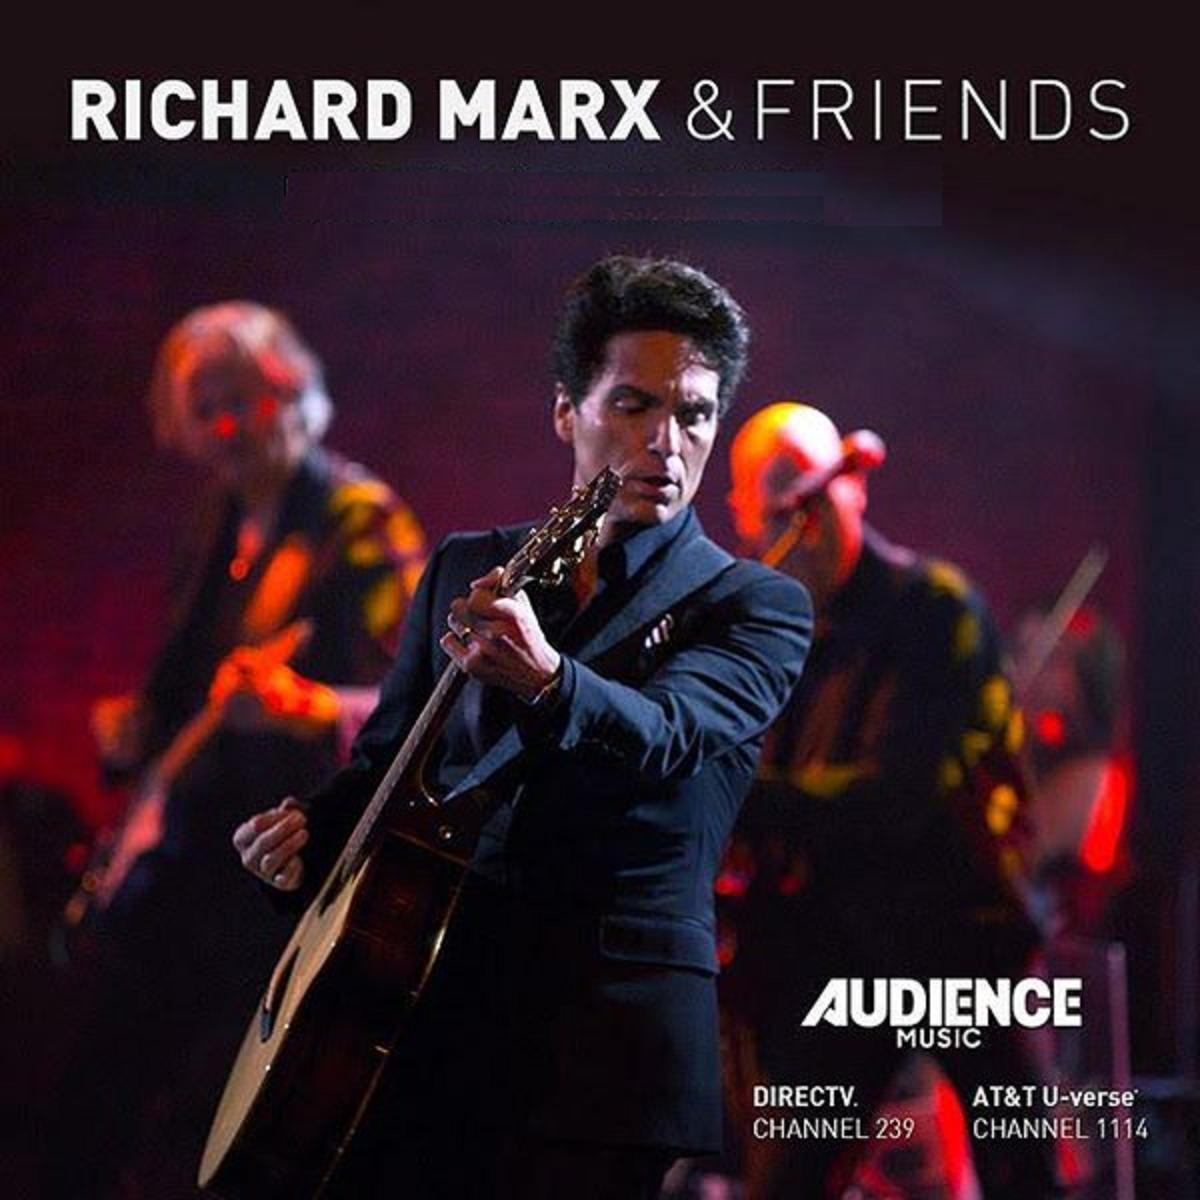 #FF @RichardMarx Singer,Songwriter,Musician,Record Producer. 30M+ Records Sold. New single! >https://t.co/8H91lTB7so https://t.co/jmyZPWQHNE